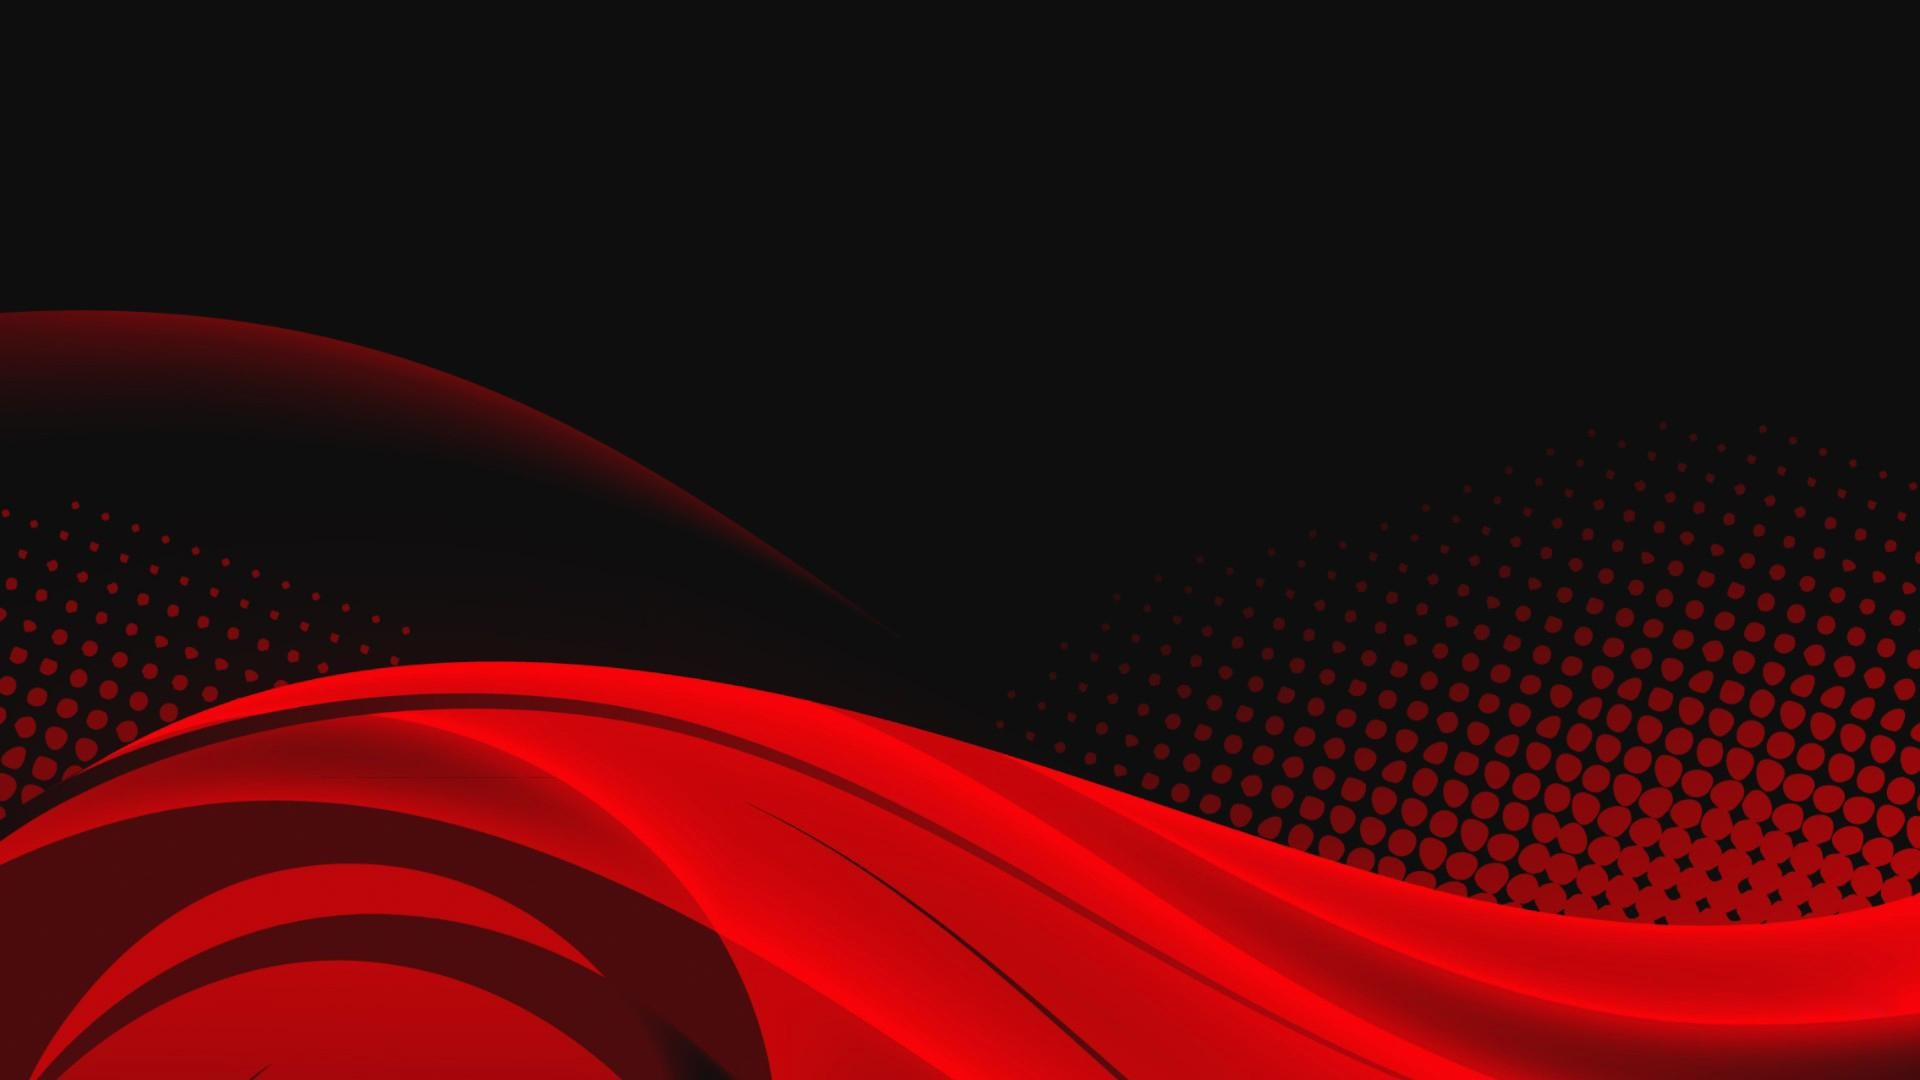 Black-and-Red-Wallpaper-Free